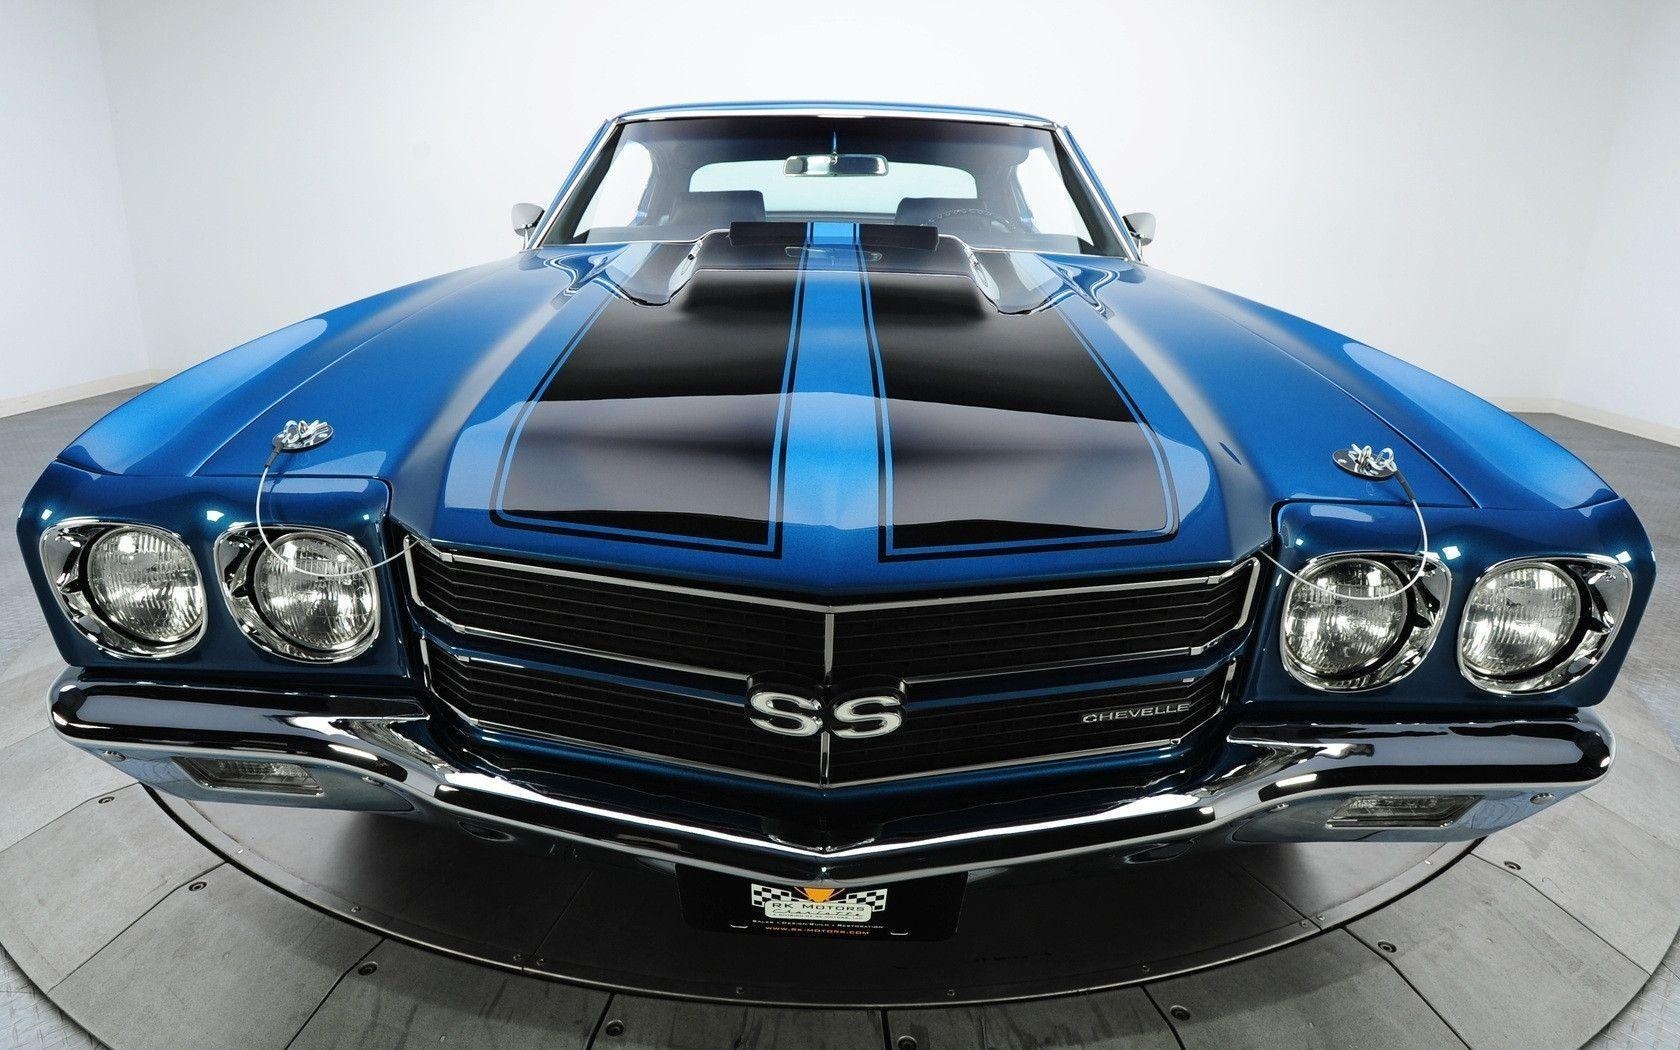 Muscle Car Wallpaper Hd - Cars Wallpapers (9103) ilikewalls.